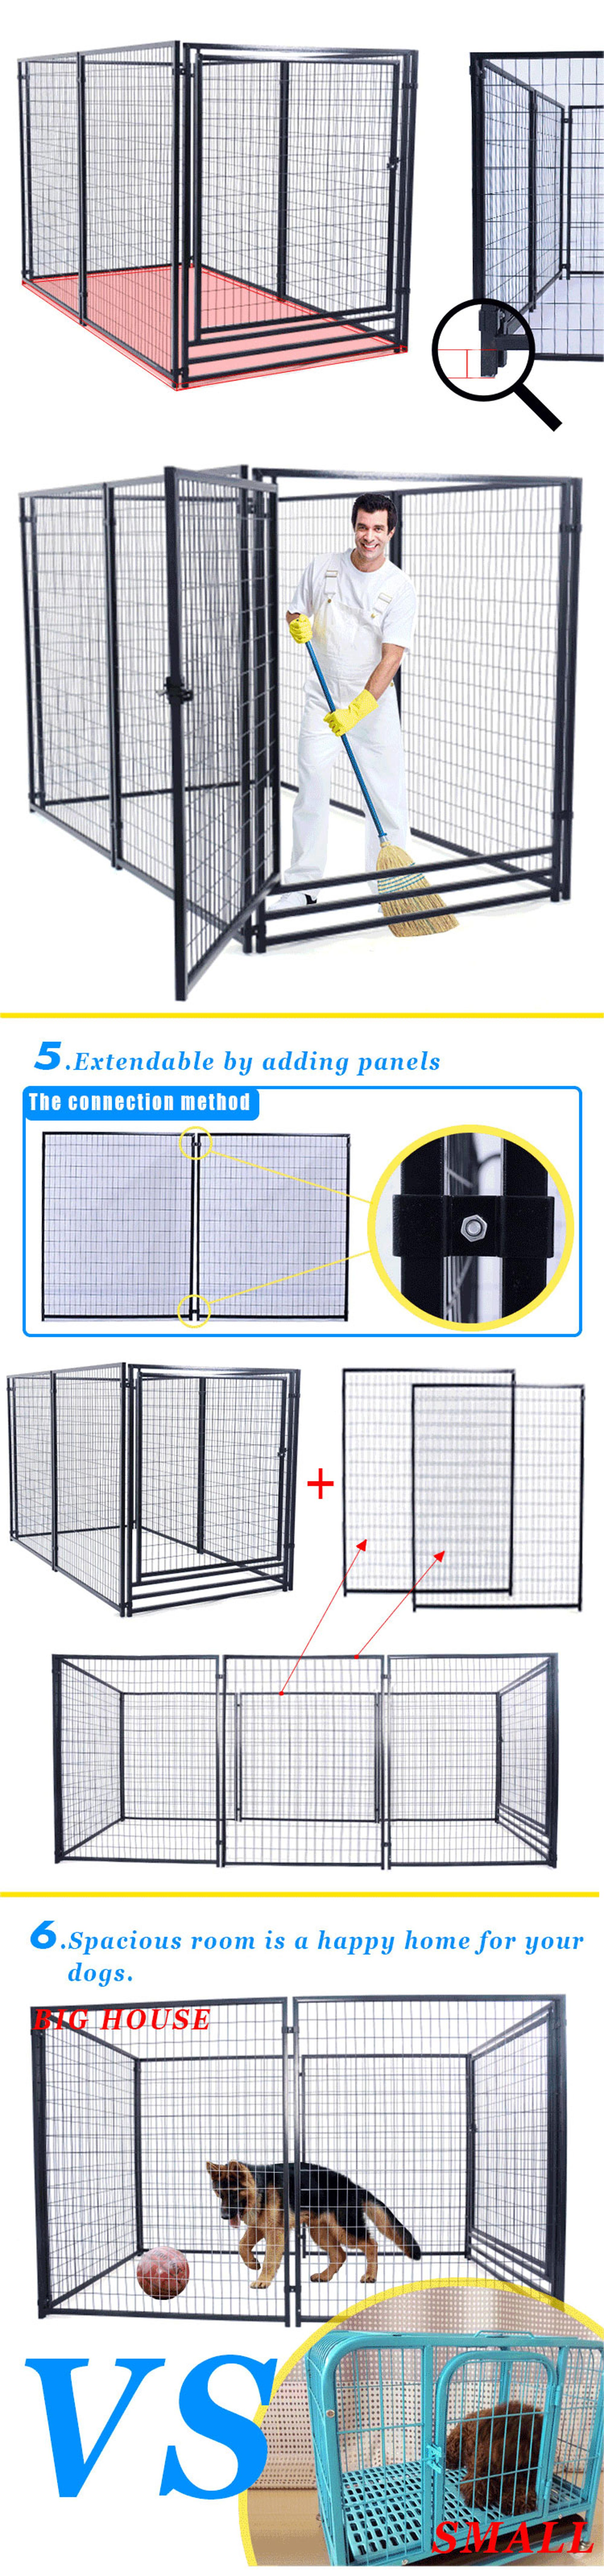 Manufacturer wholesale welded wire panel dog kennel and runs